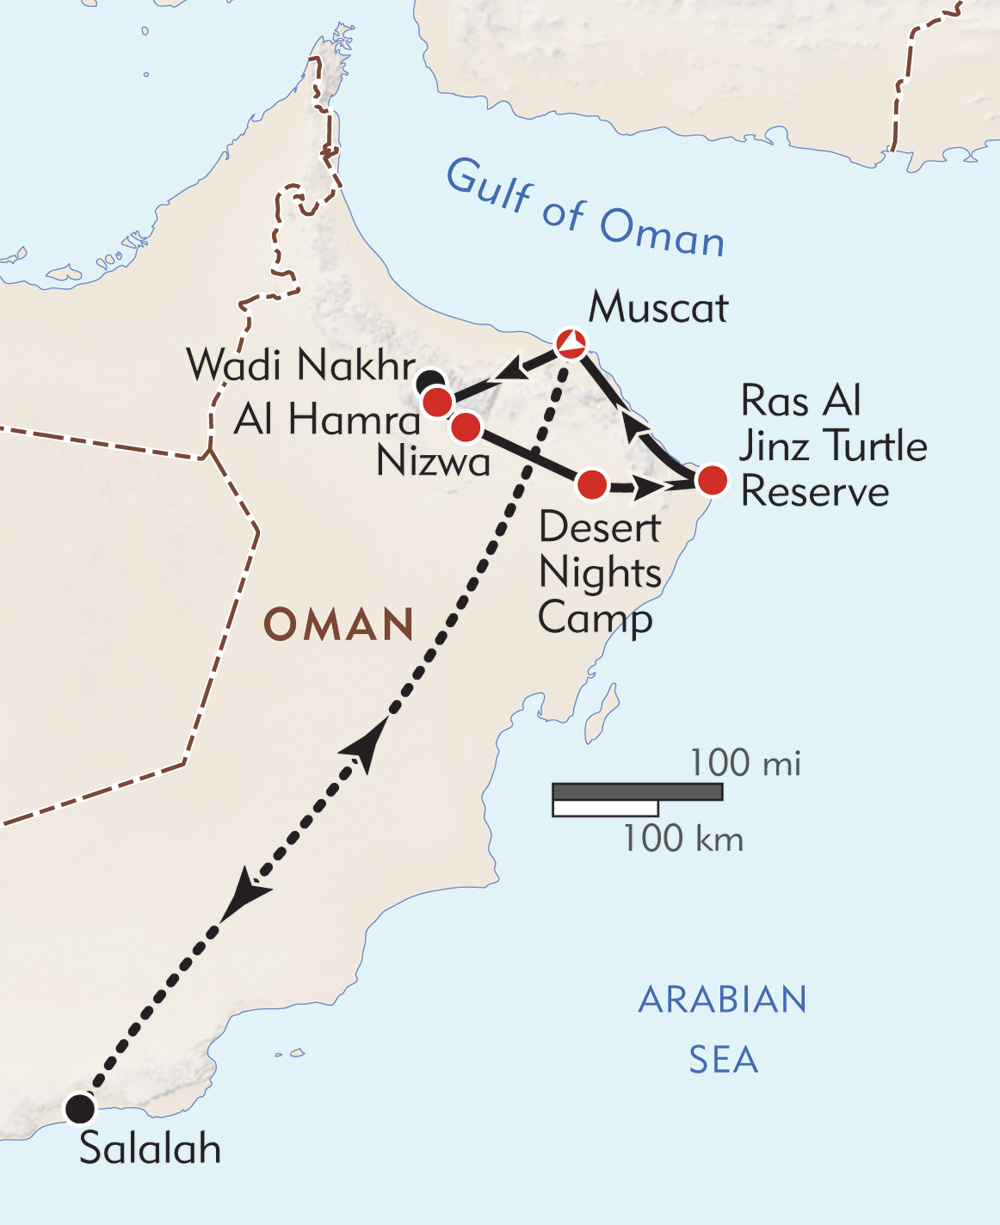 Desert Kingdom of Oman route-map